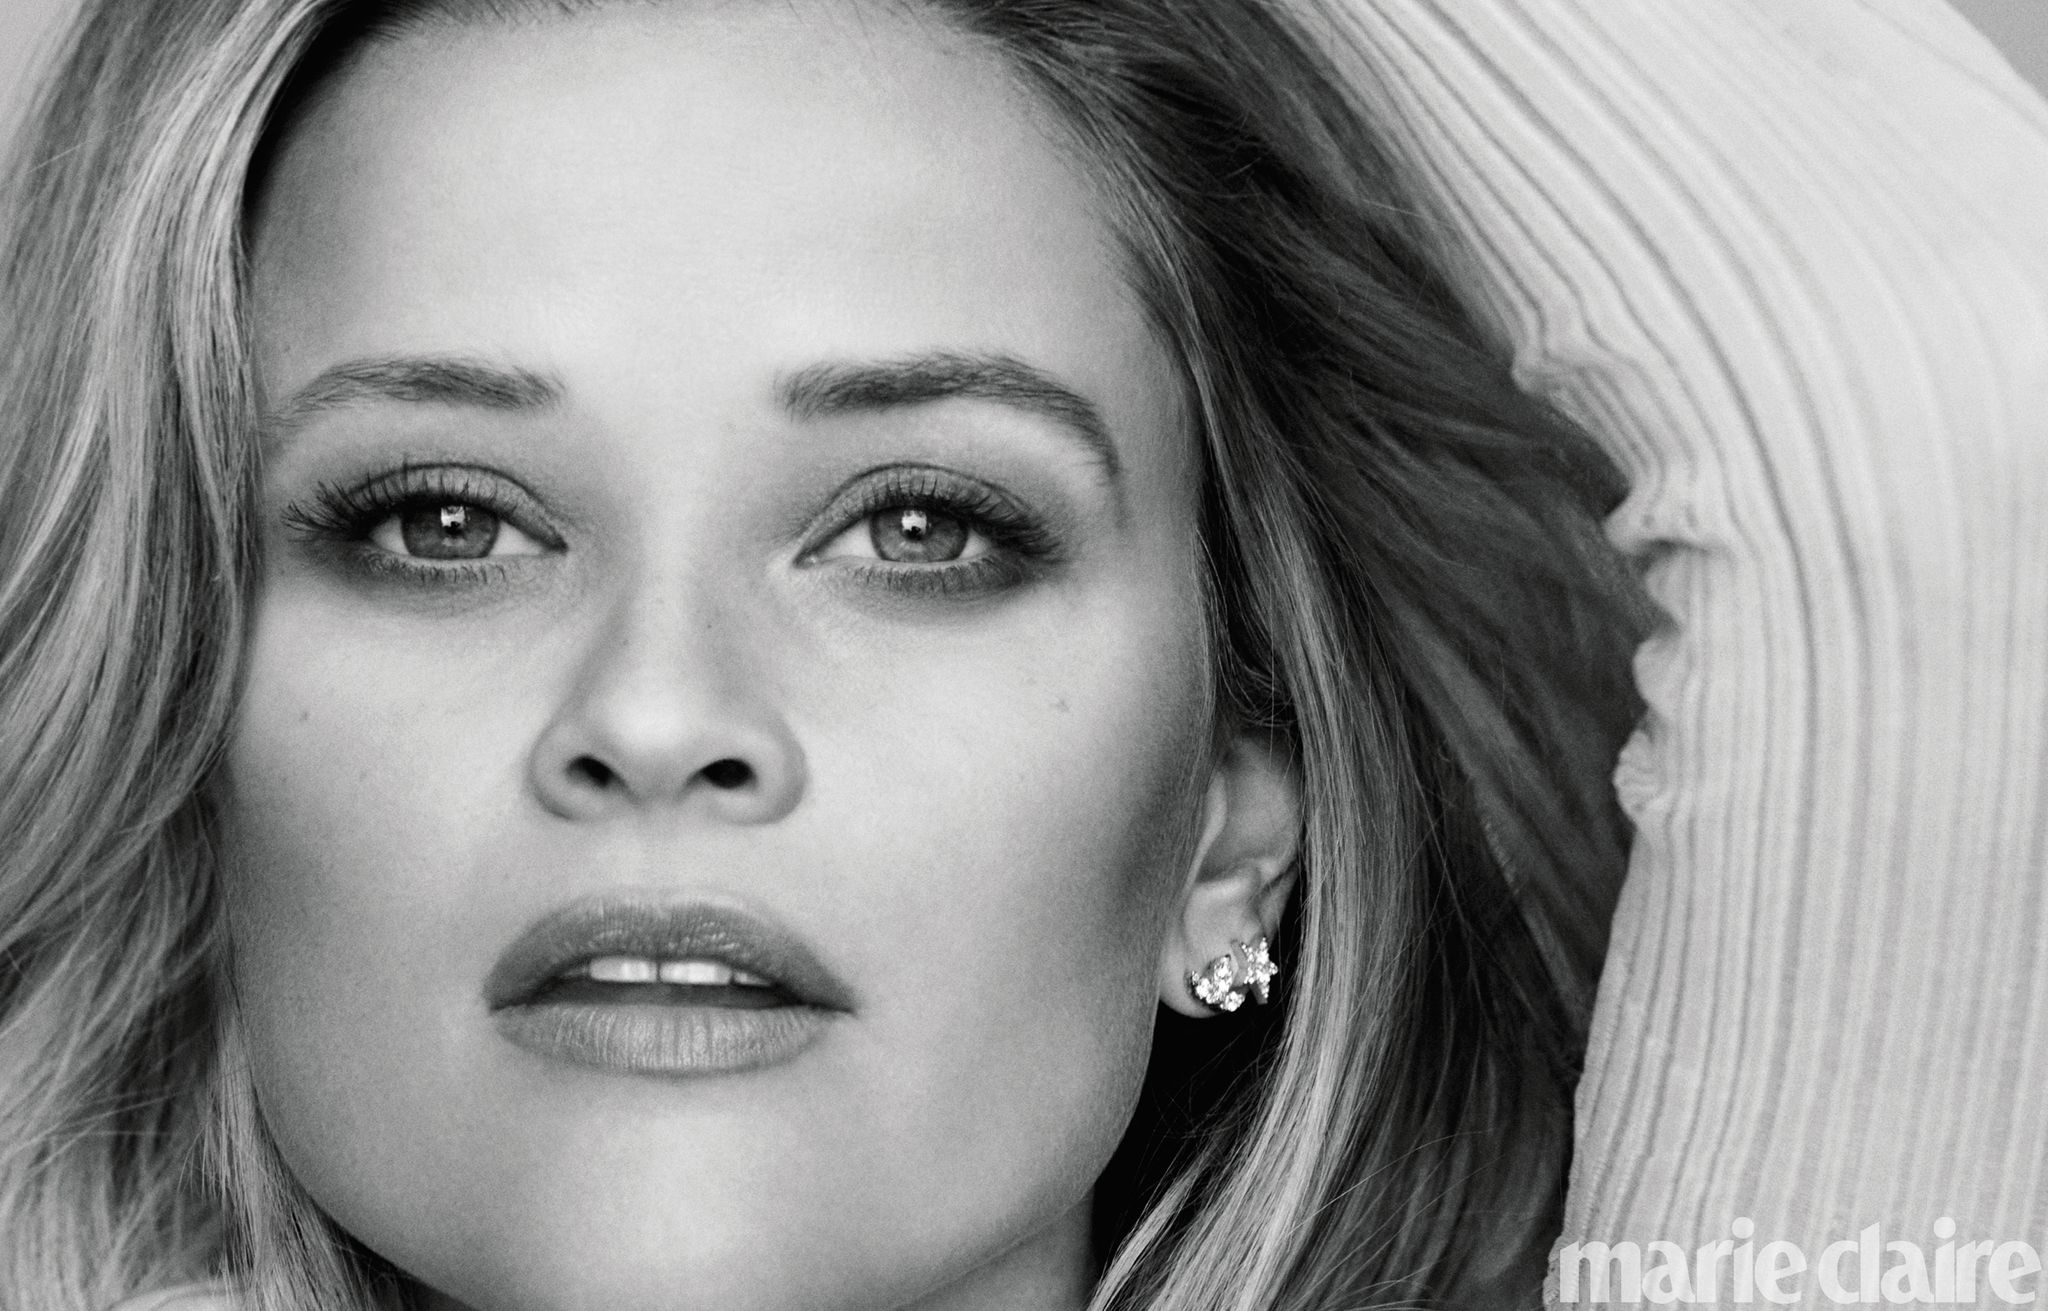 Reese Witherspoon Covers MARIE CLAIRE, Talks FEAR image